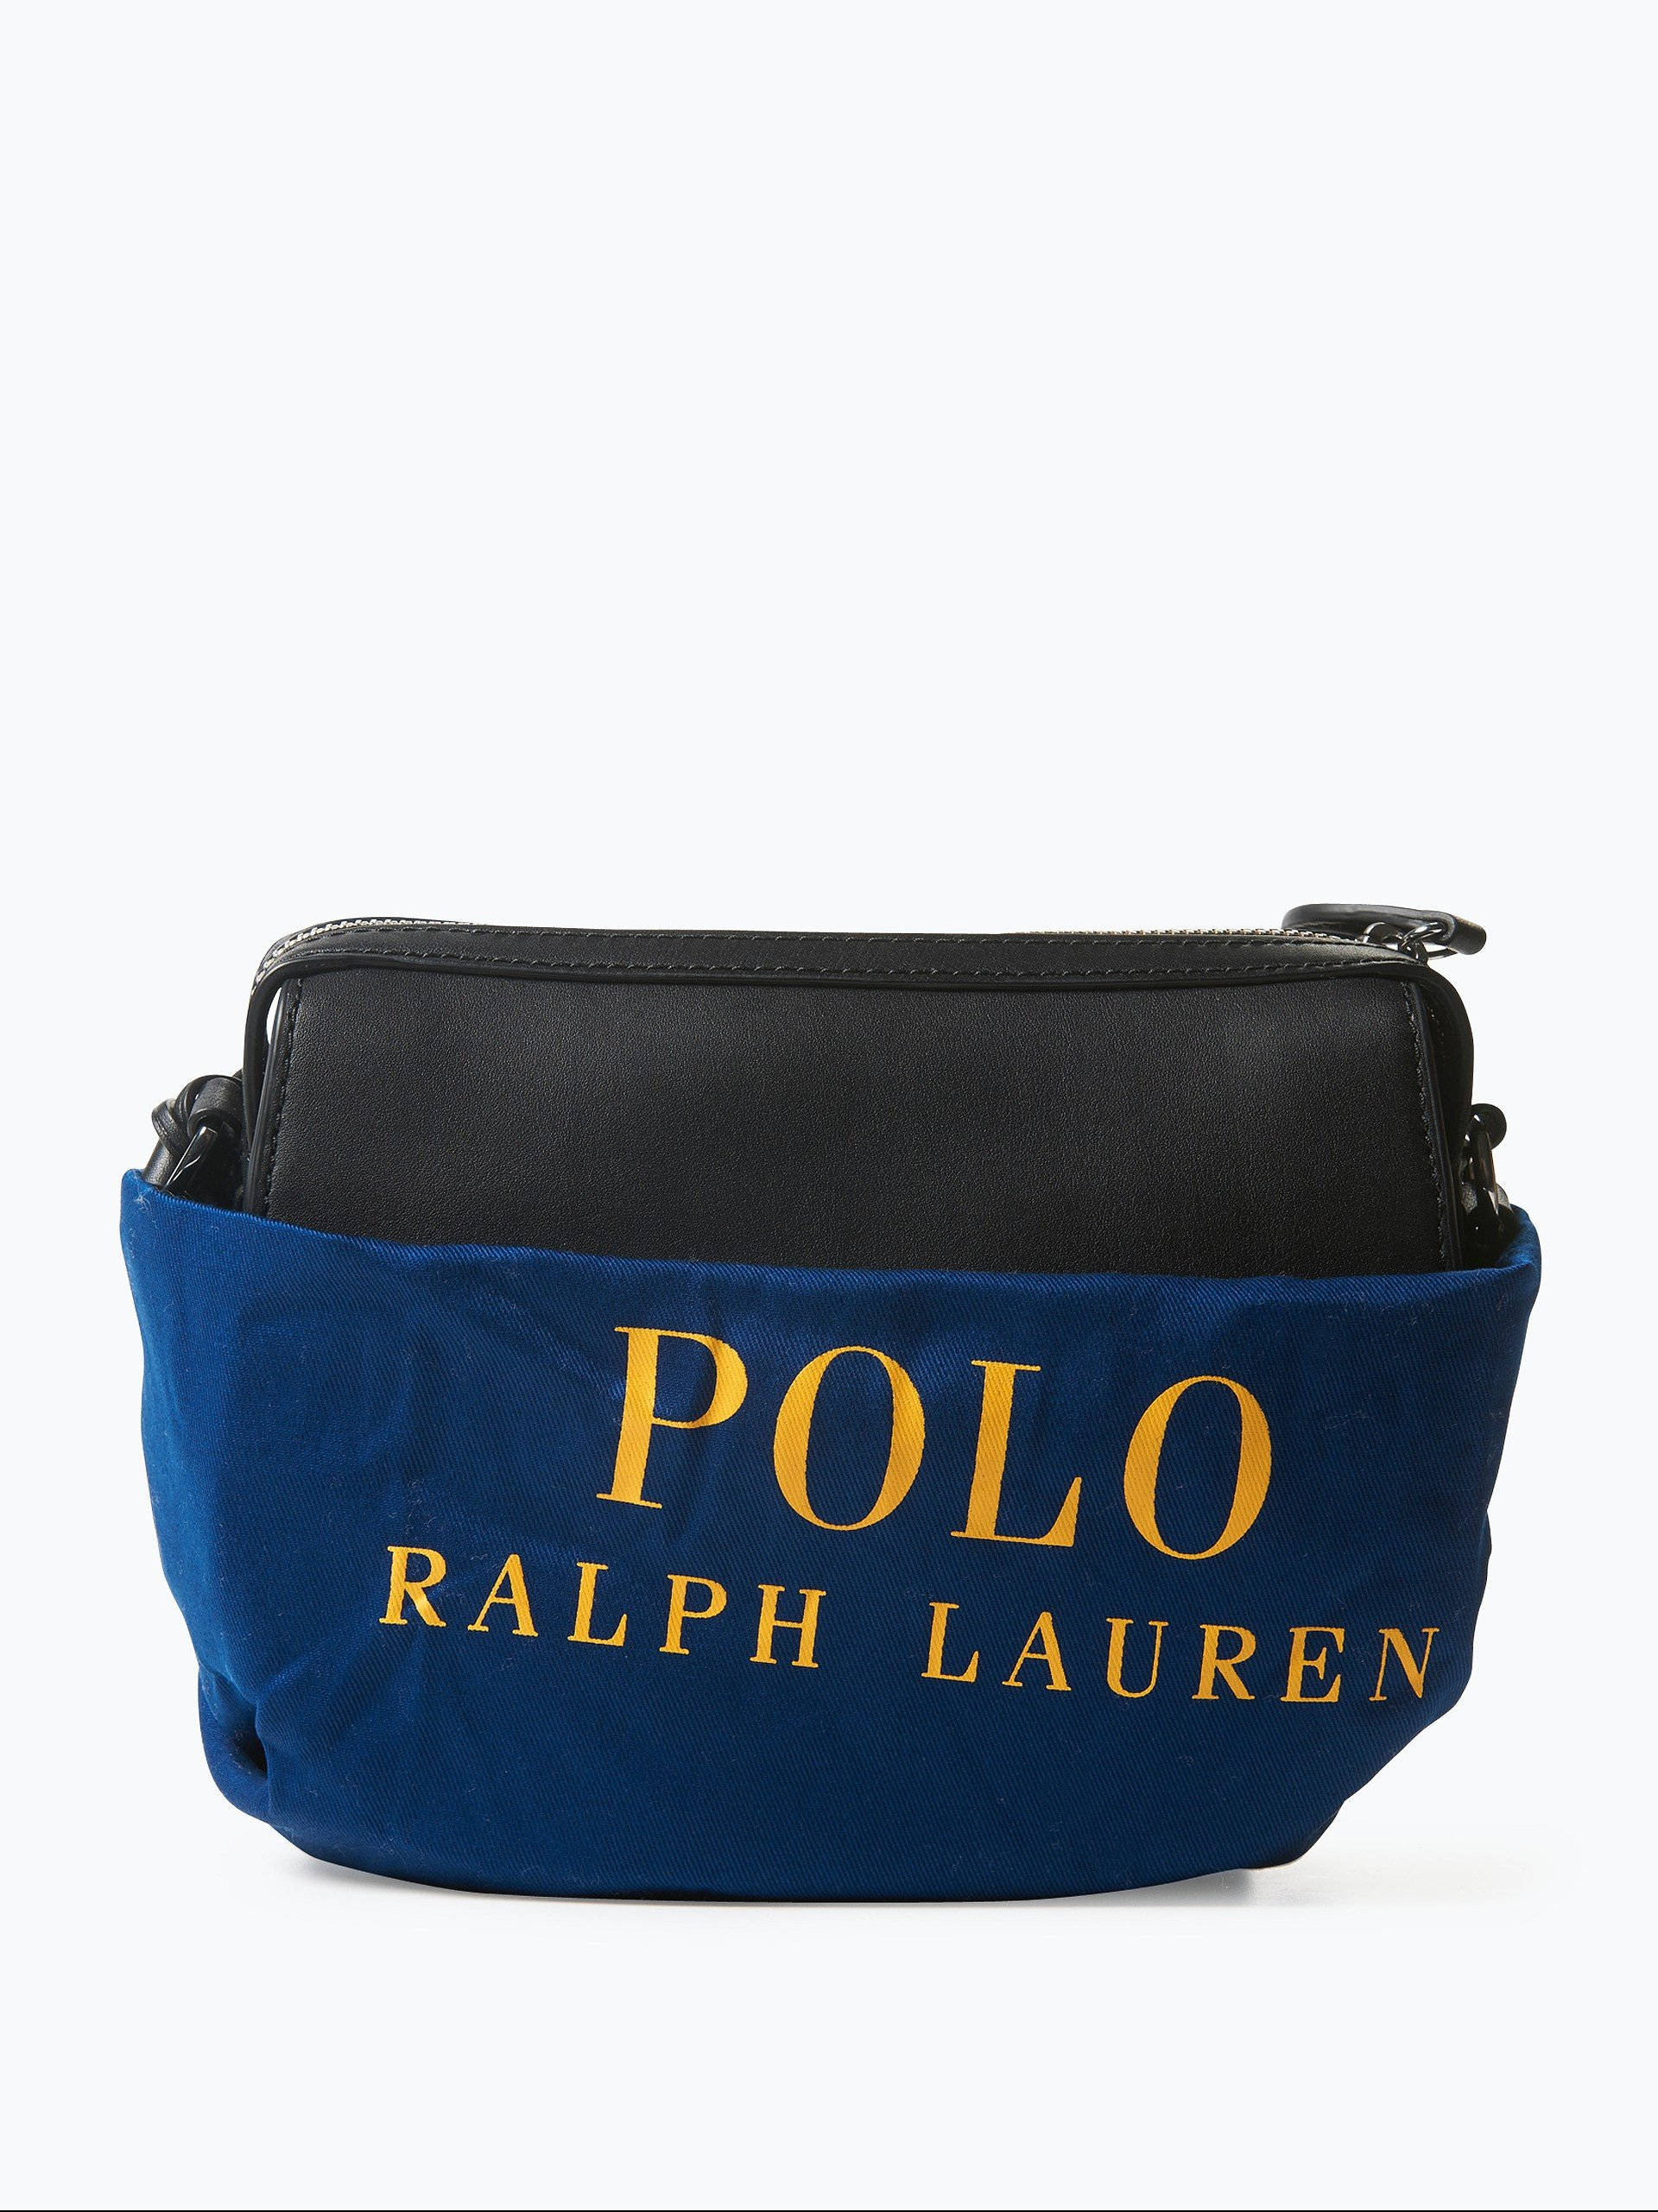 polo ralph lauren damen handtasche aus leder online kaufen. Black Bedroom Furniture Sets. Home Design Ideas